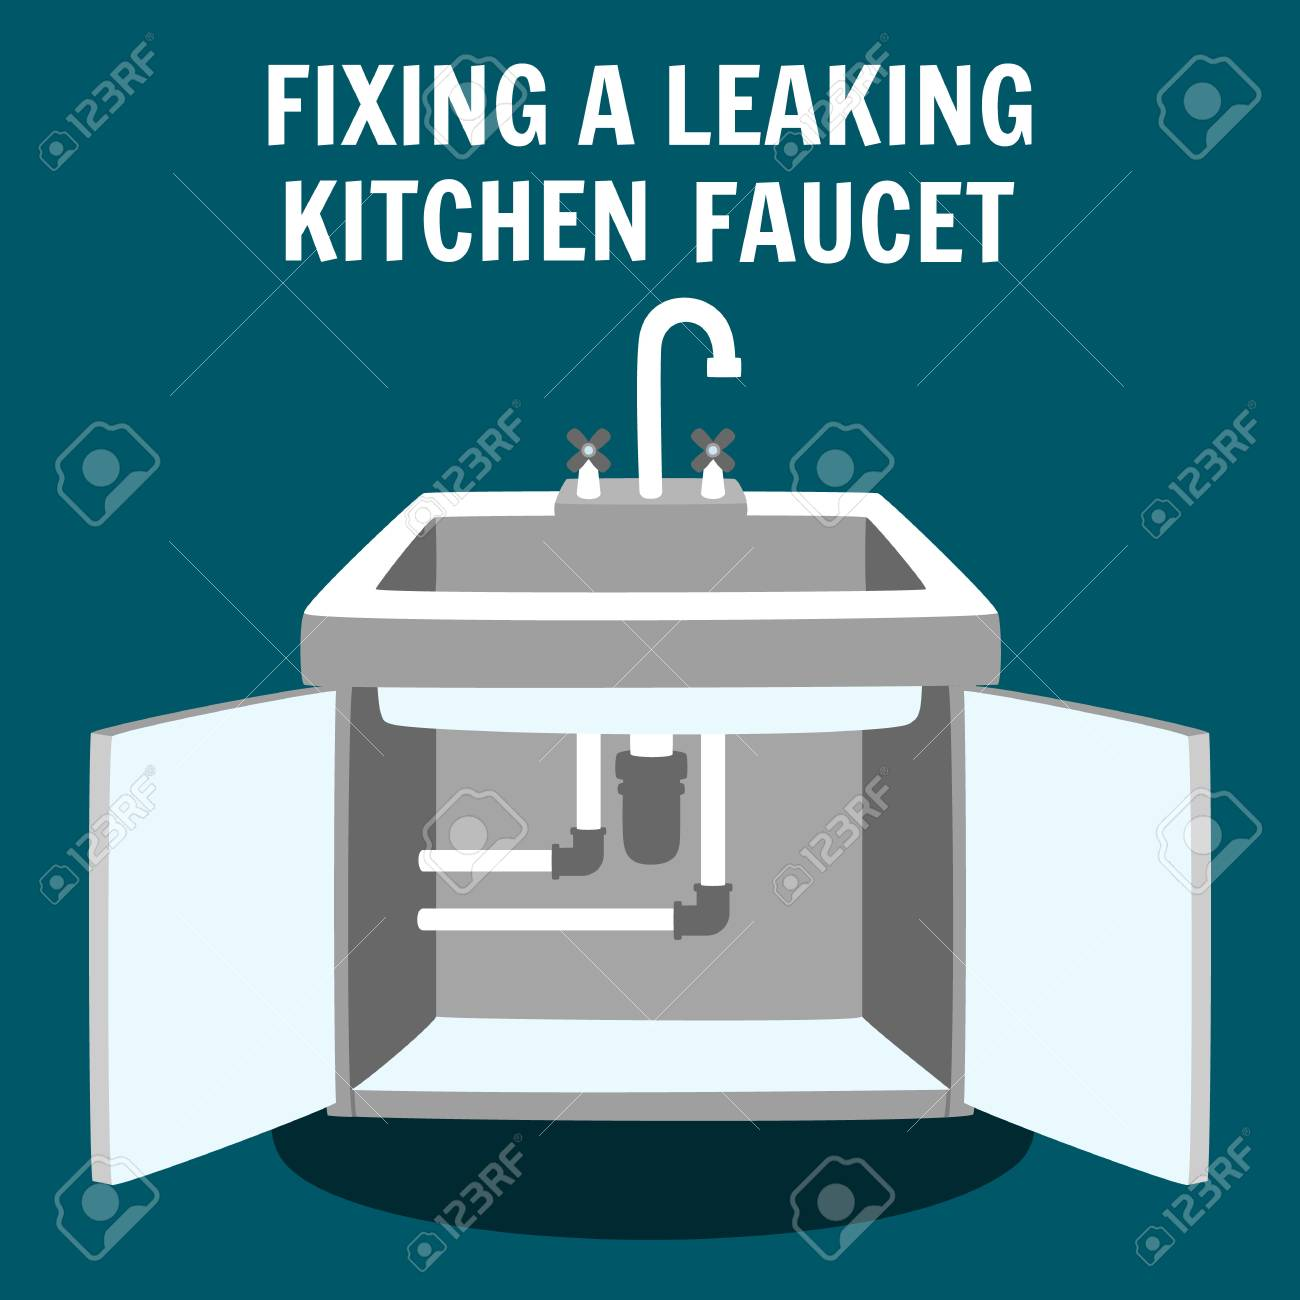 Fixing Leaking Kitchen Faucet Banner Professional Plumbing Service Royalty Free Cliparts Vectors And Stock Illustration Image 121024142